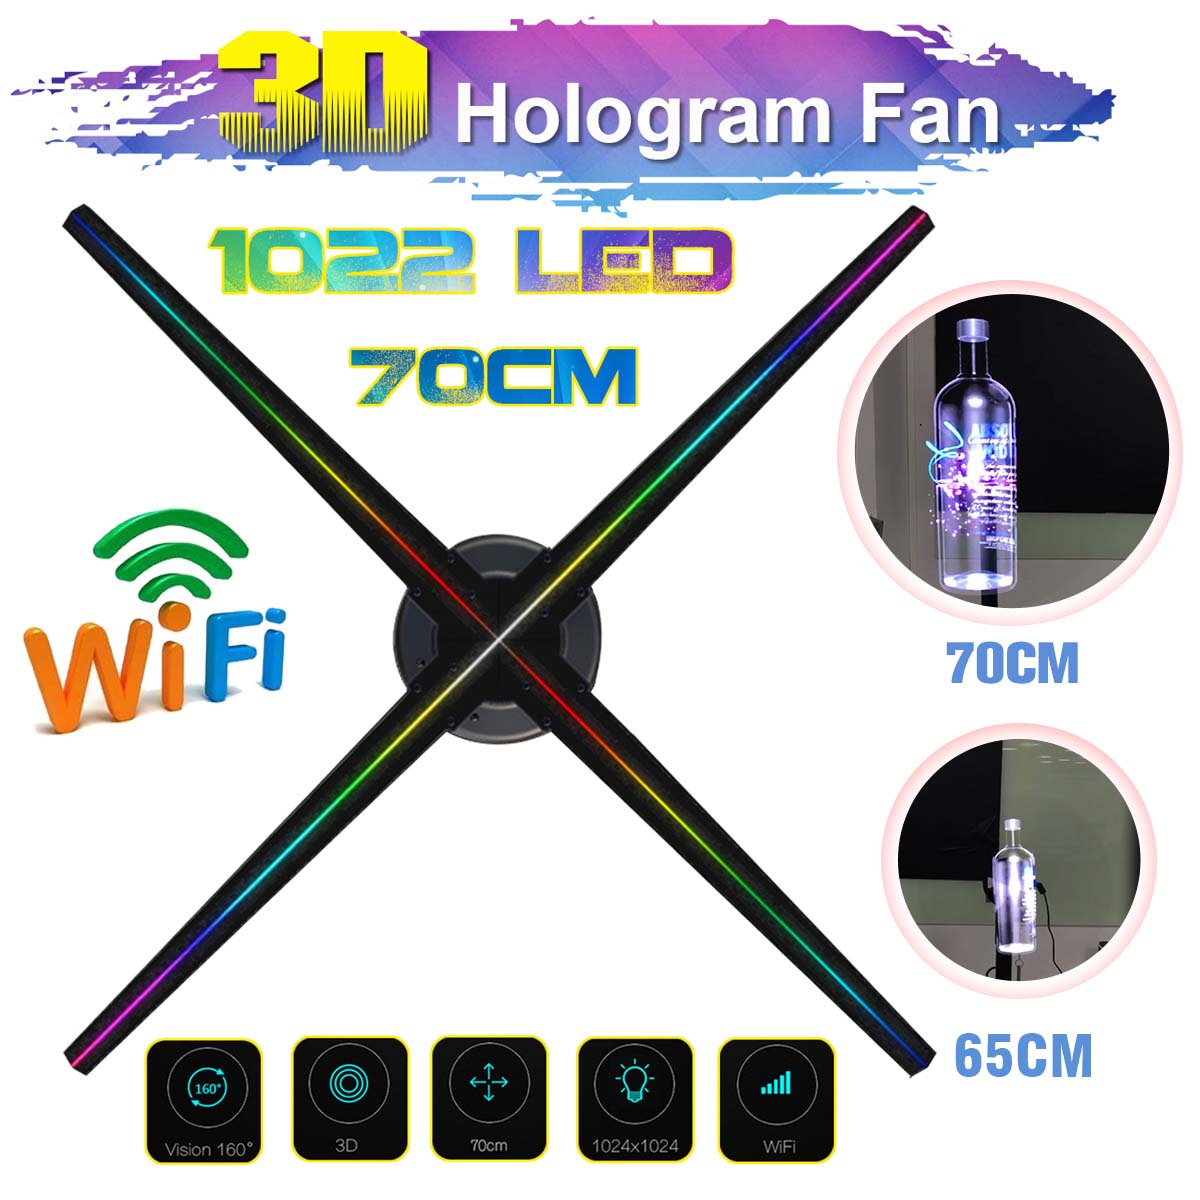 Upgraded 70cm Wifi 3D Holographic Projector Fan Hologram Player LED Video Display Fan Advertising Light APP Control Four Axil image